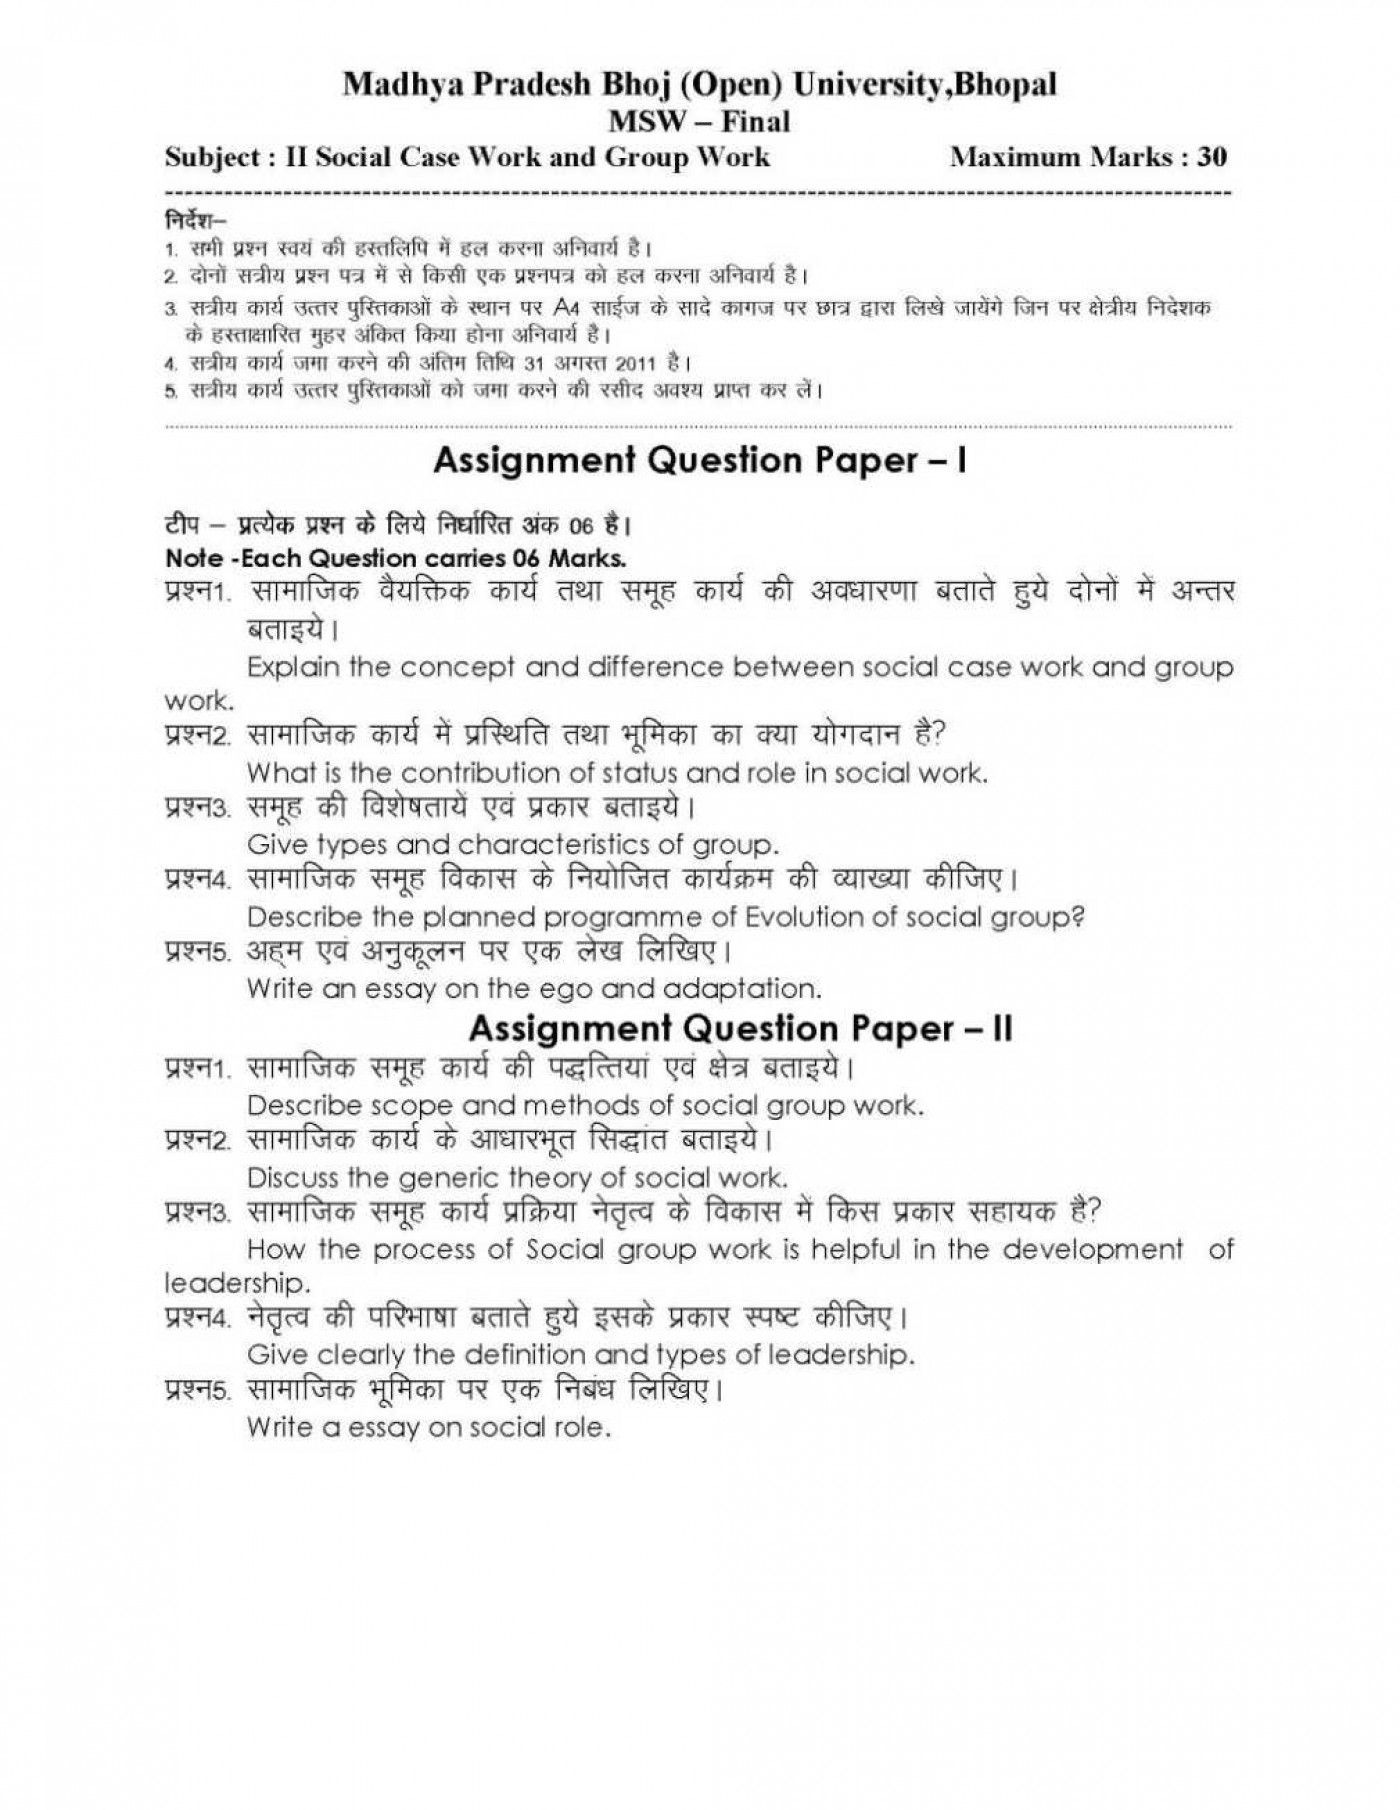 012 Bhoj University Bhopal Msw Definition Essays Surprising Essay Examples Family Heroism Pdf 1400